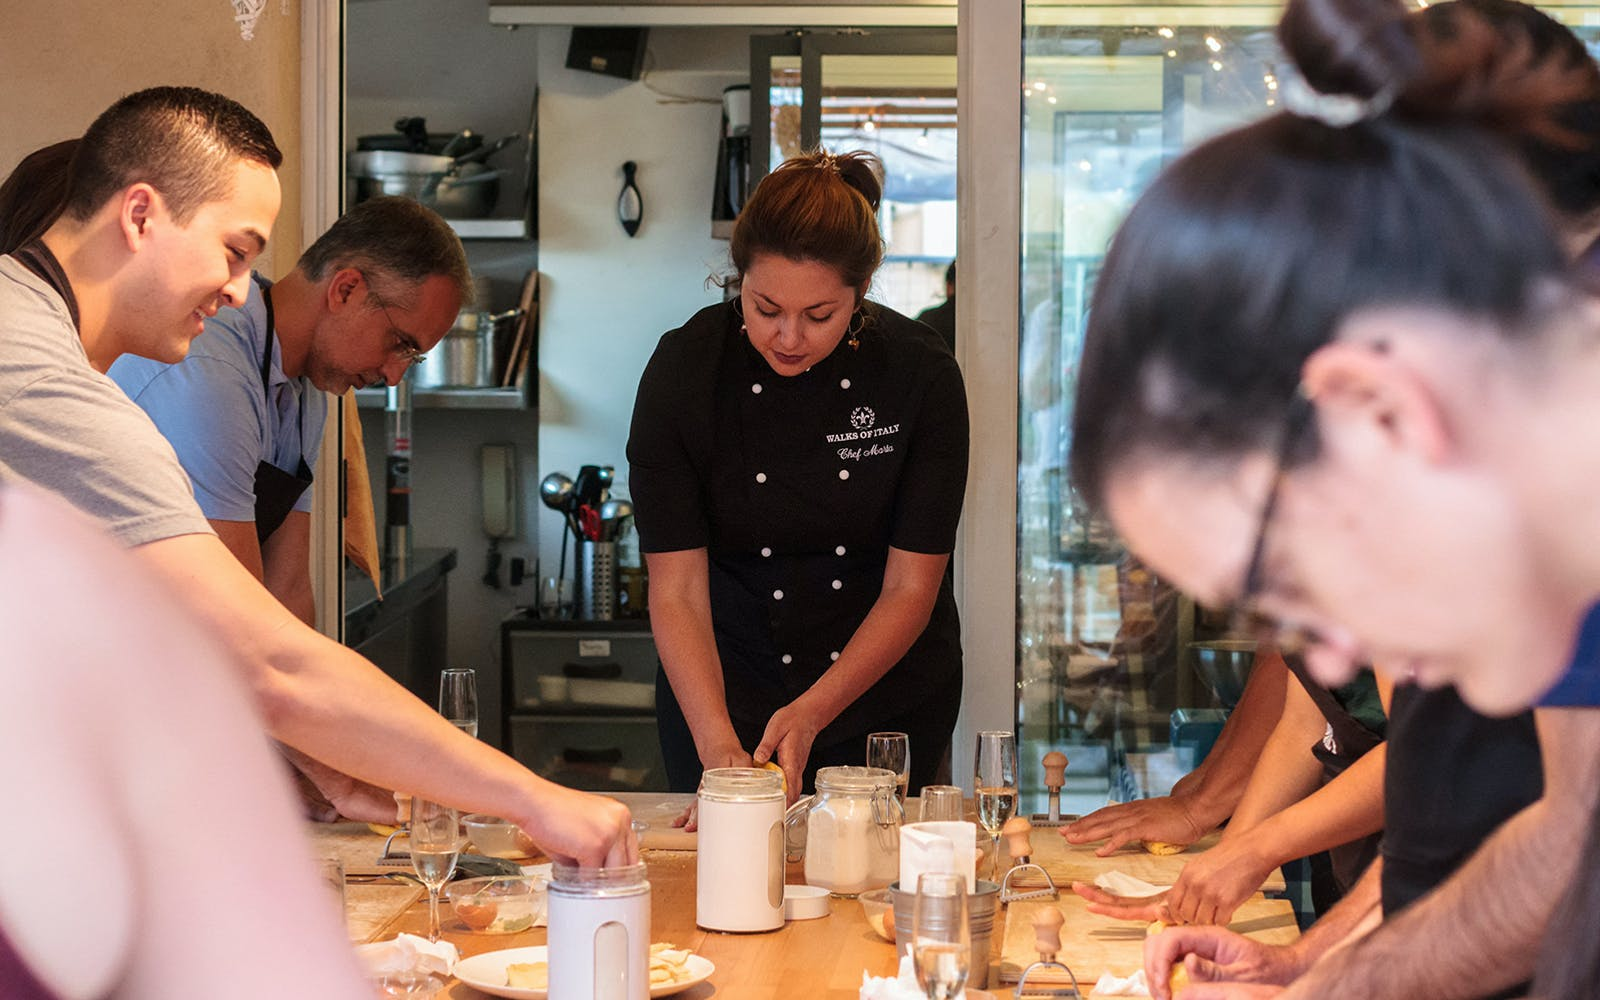 pasta-making class: cook, dine & drink wine with a local chef-4